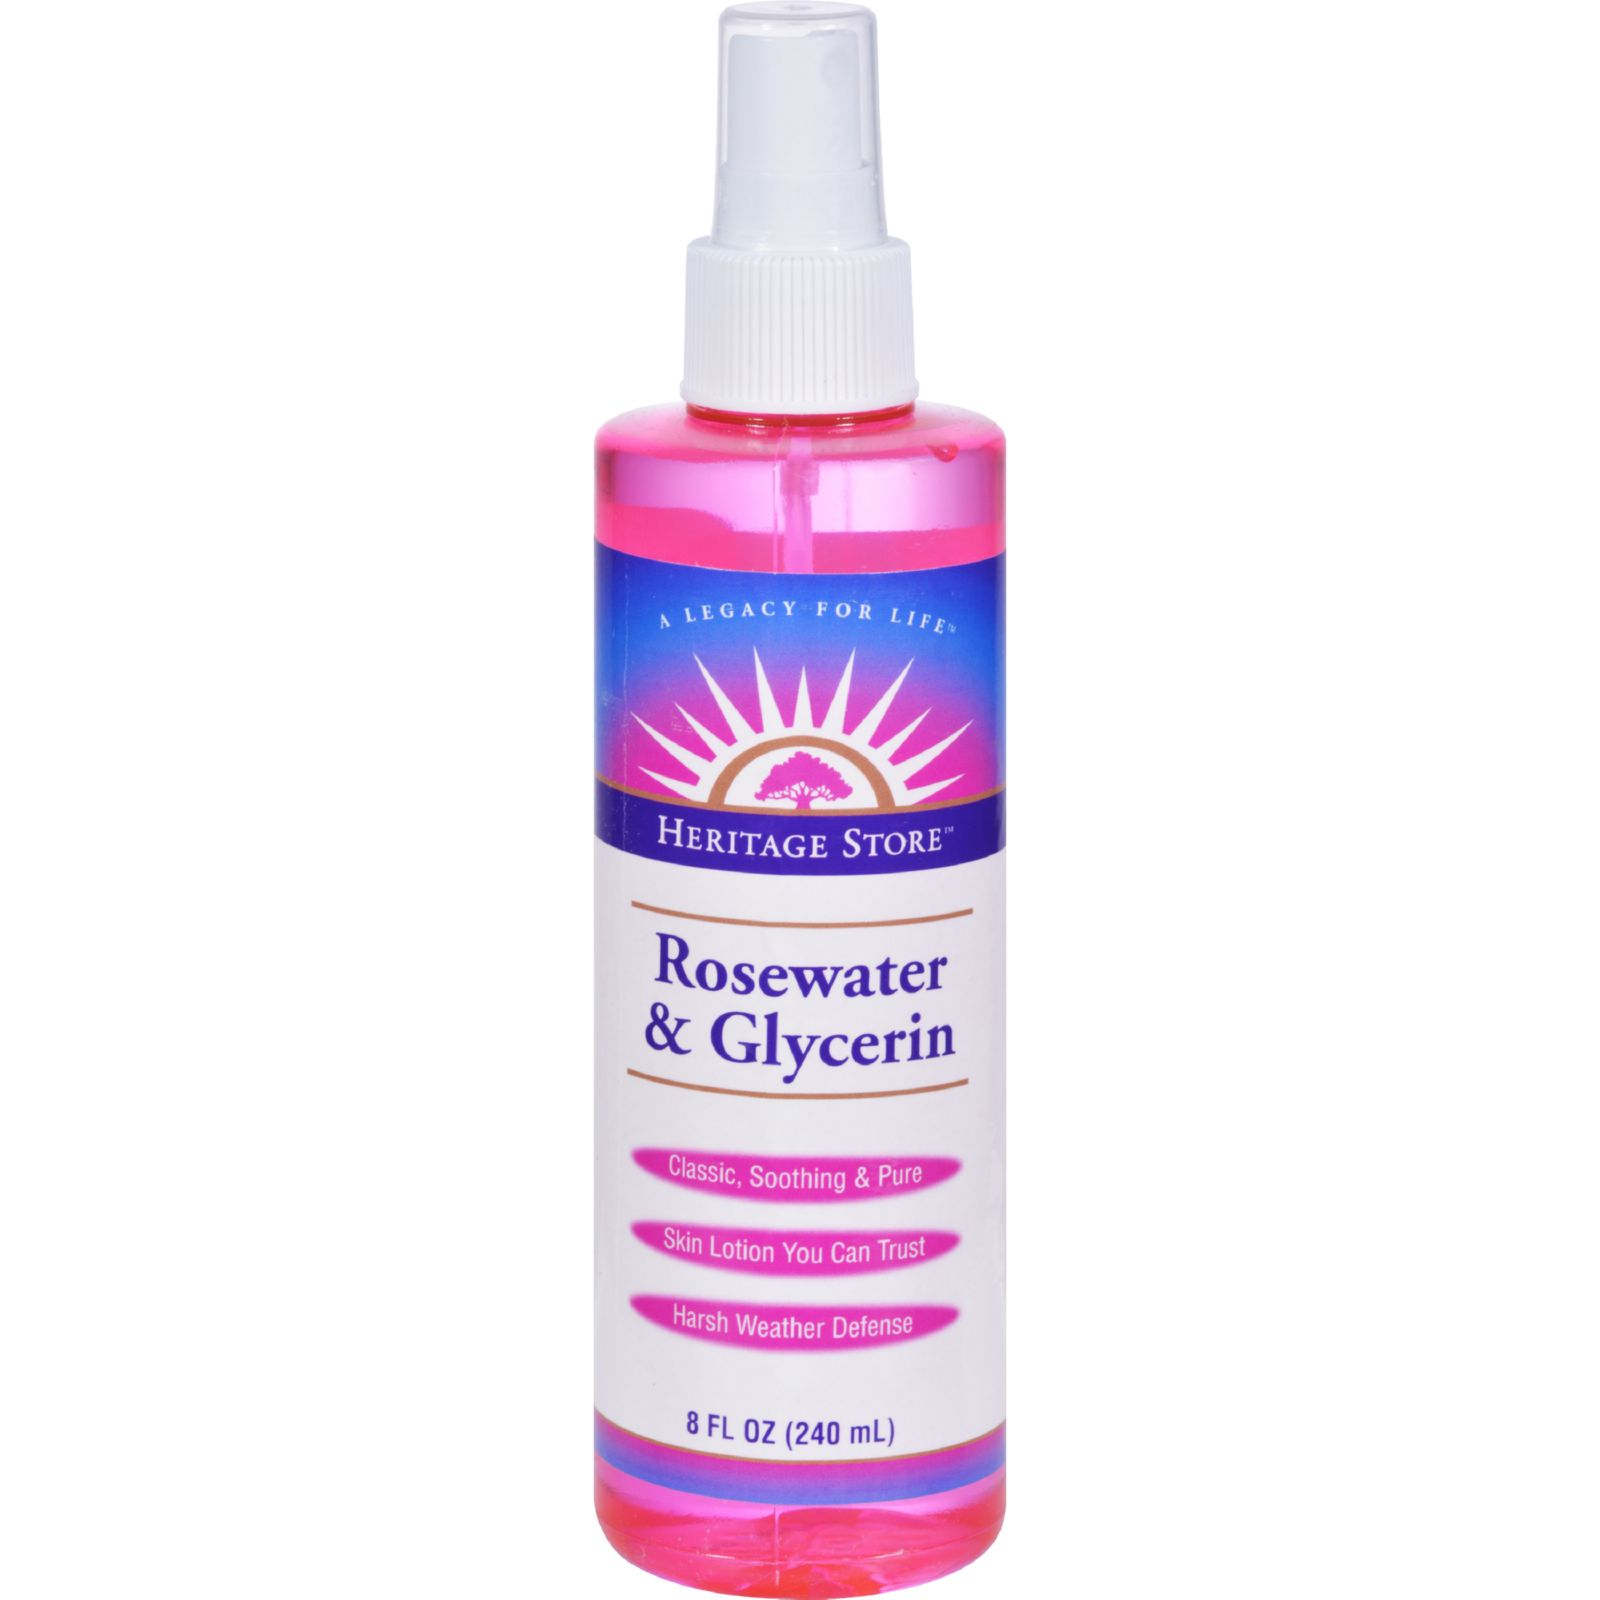 Rosewater and Glycerin - 8 fl oz